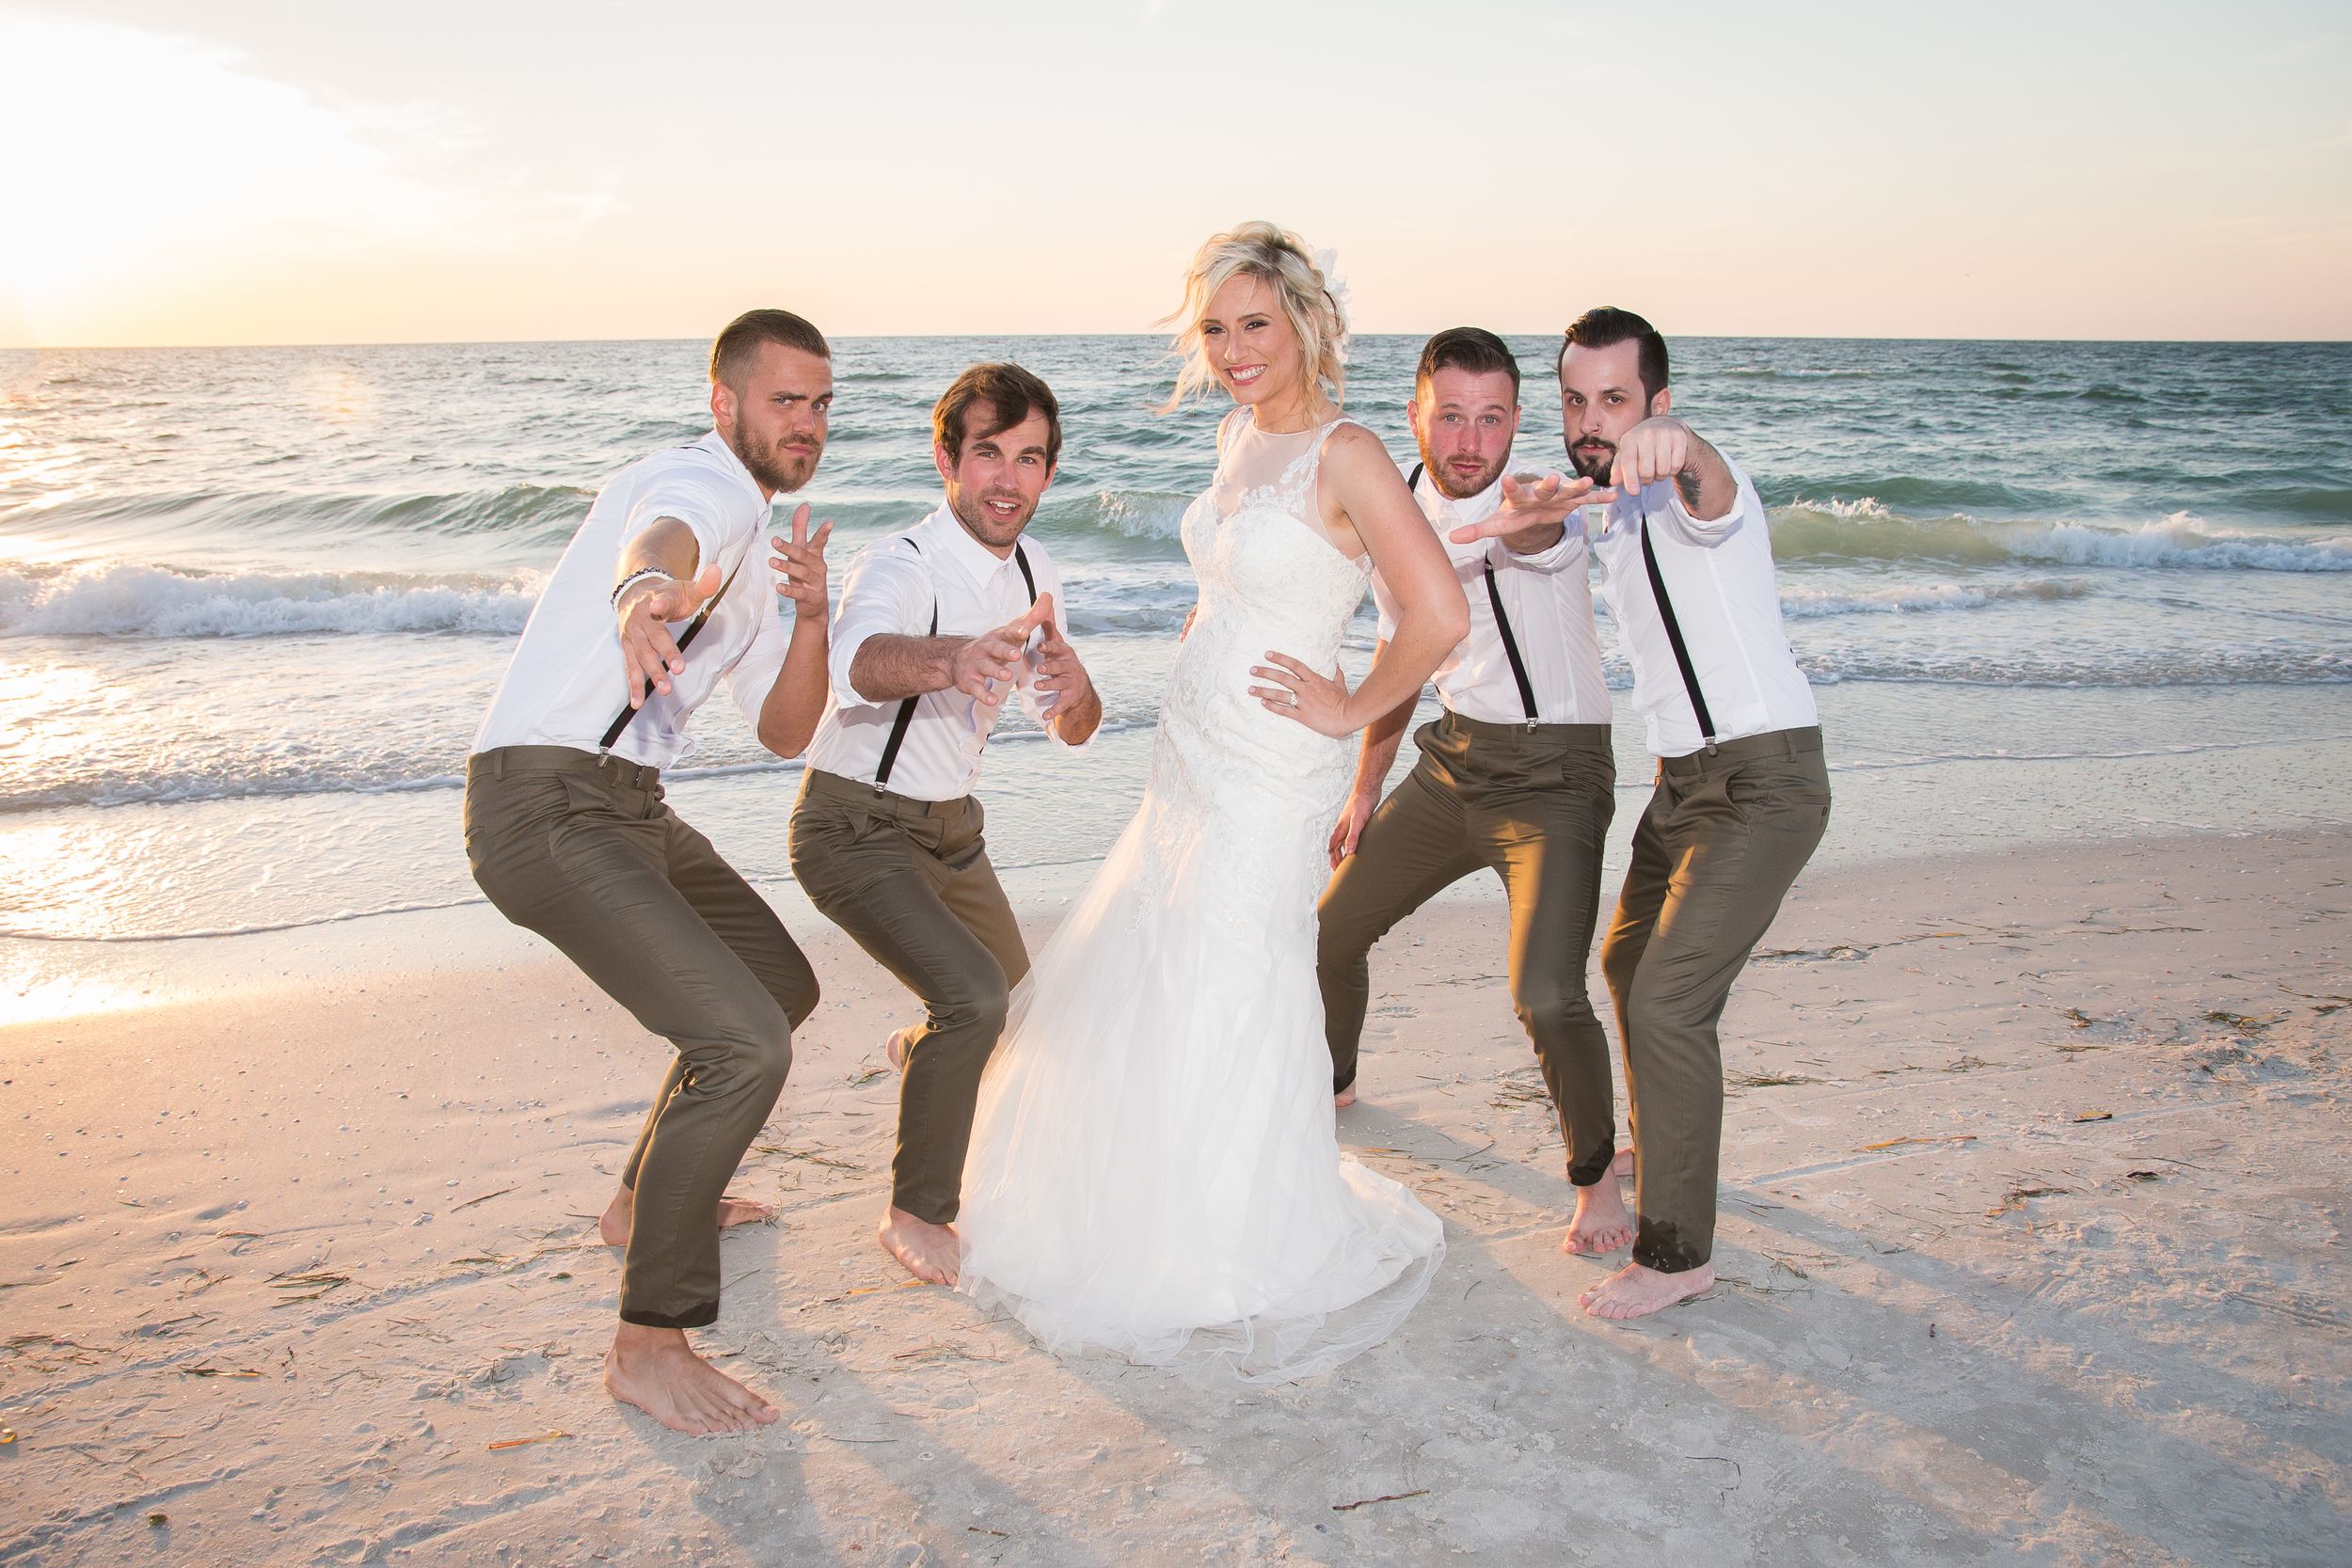 groomsmen and bride pose